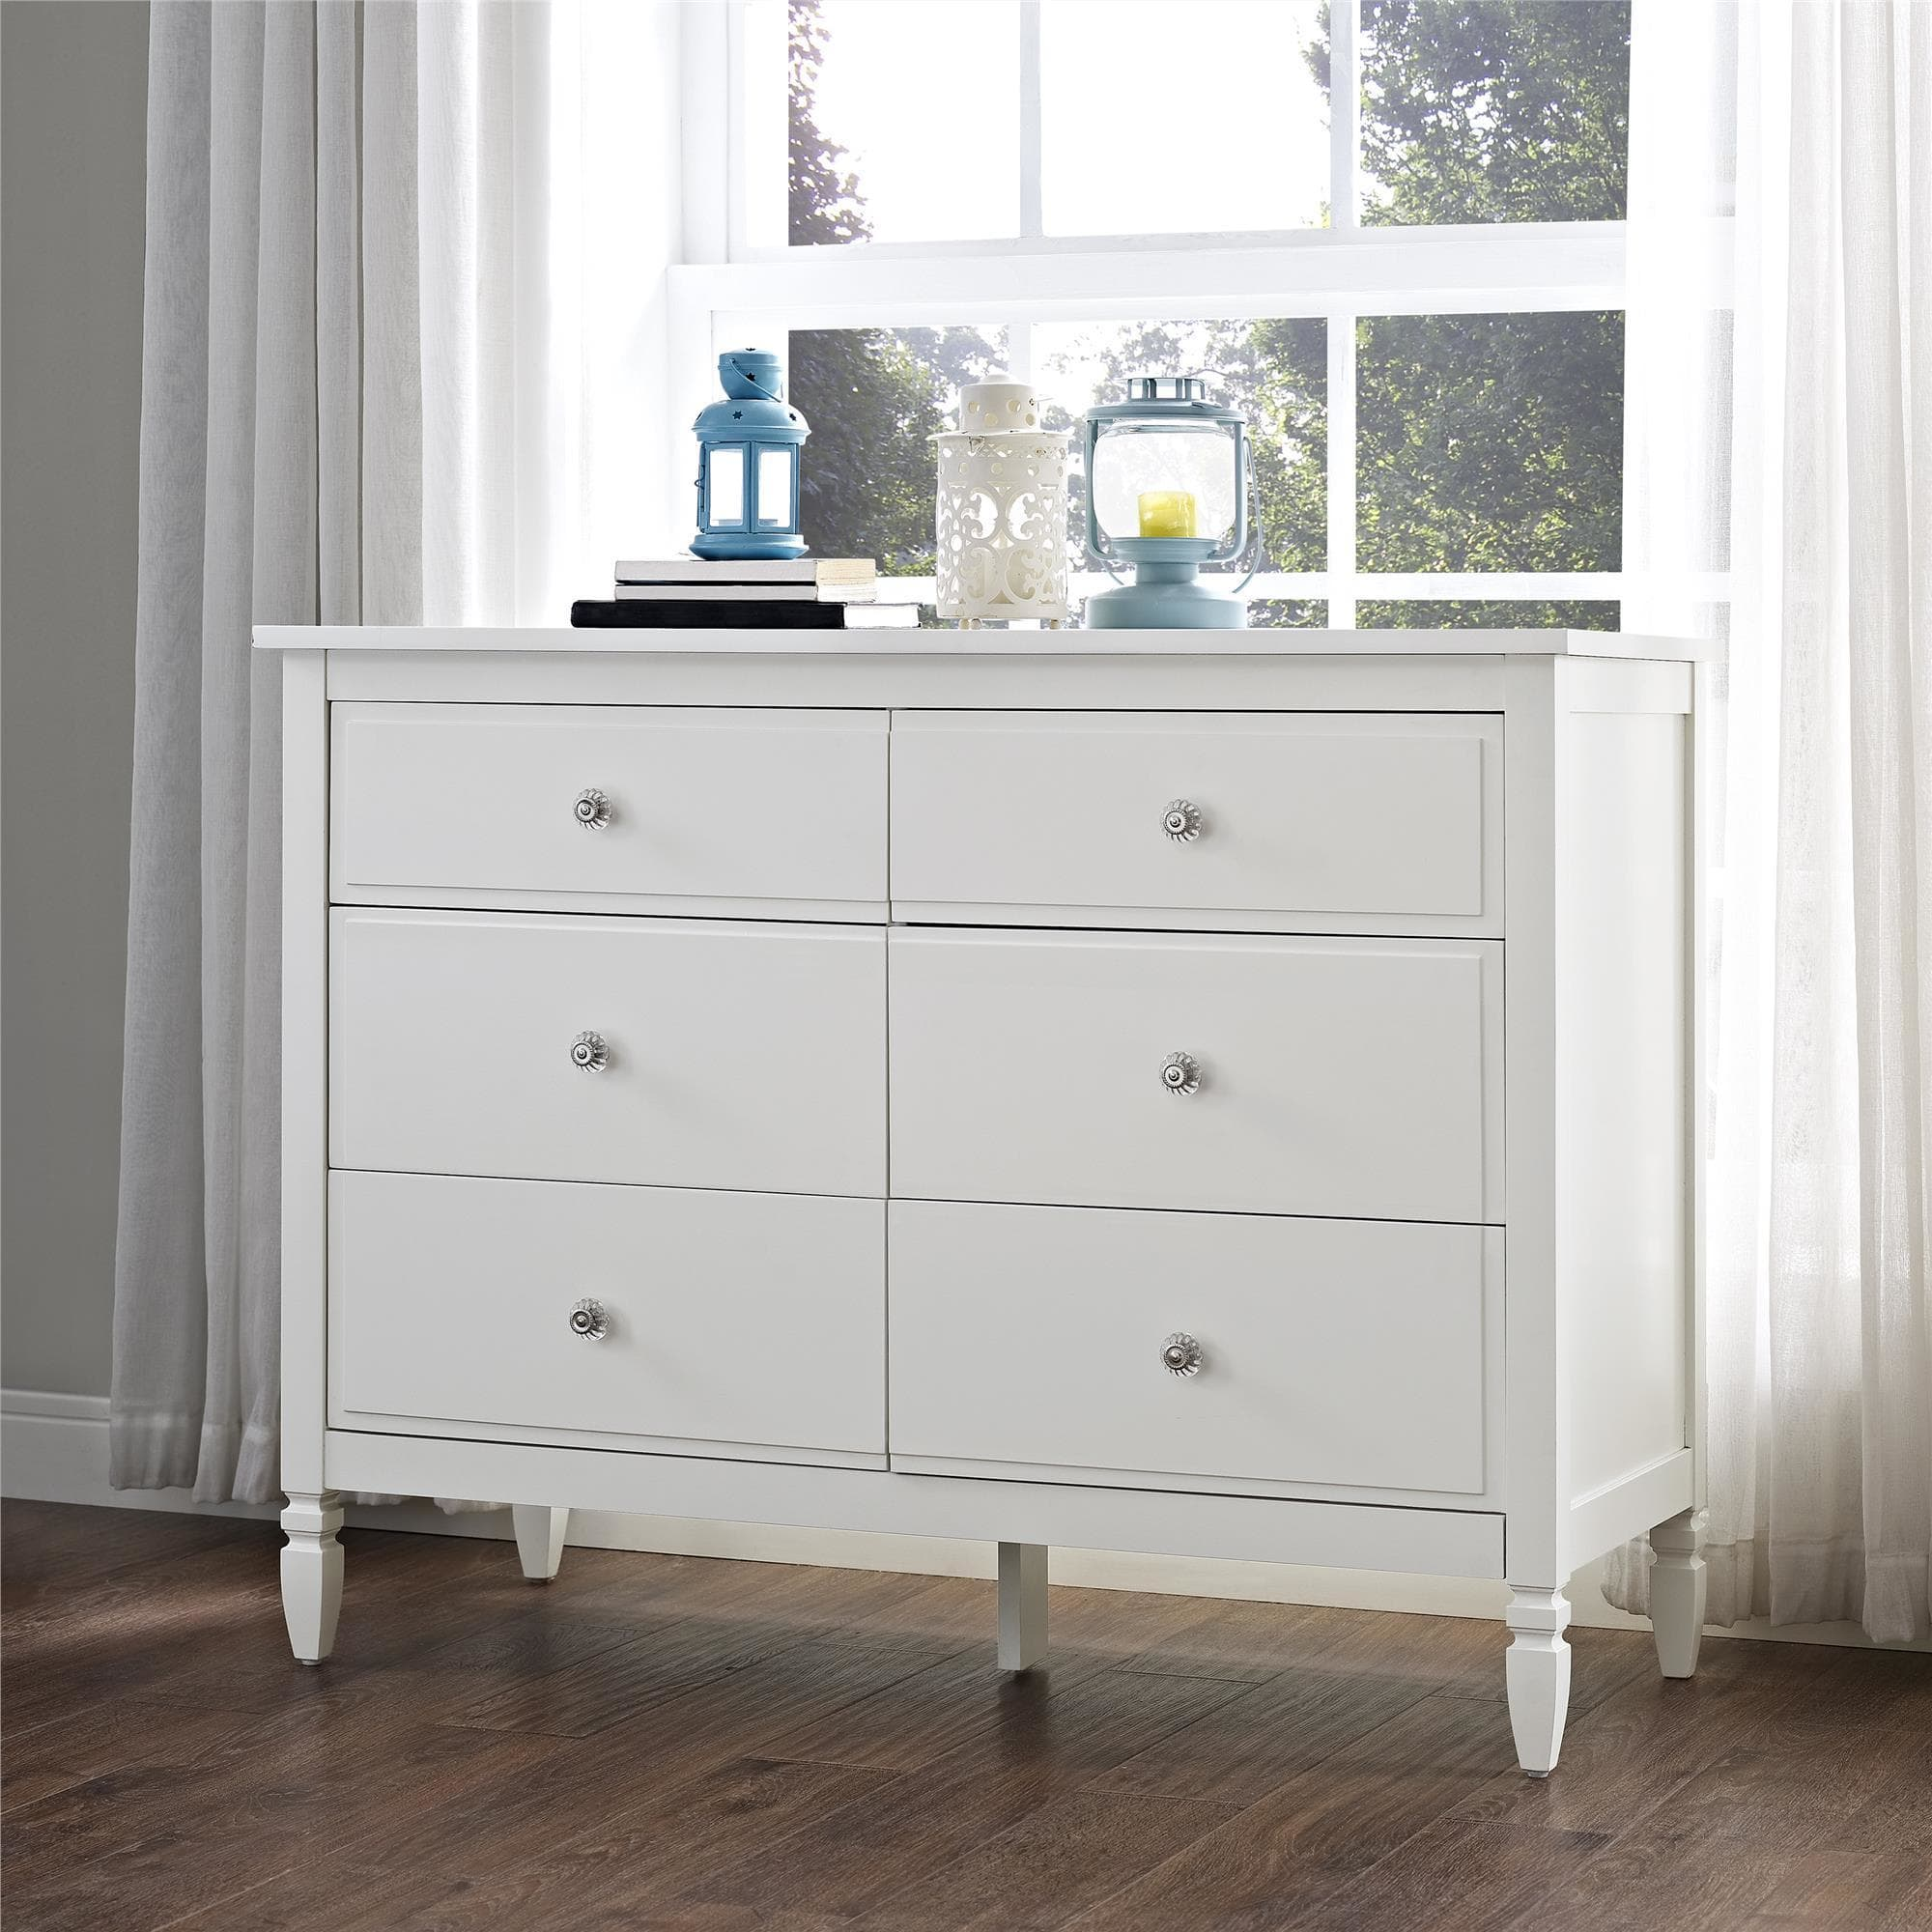 White Six-Drawer Dresser